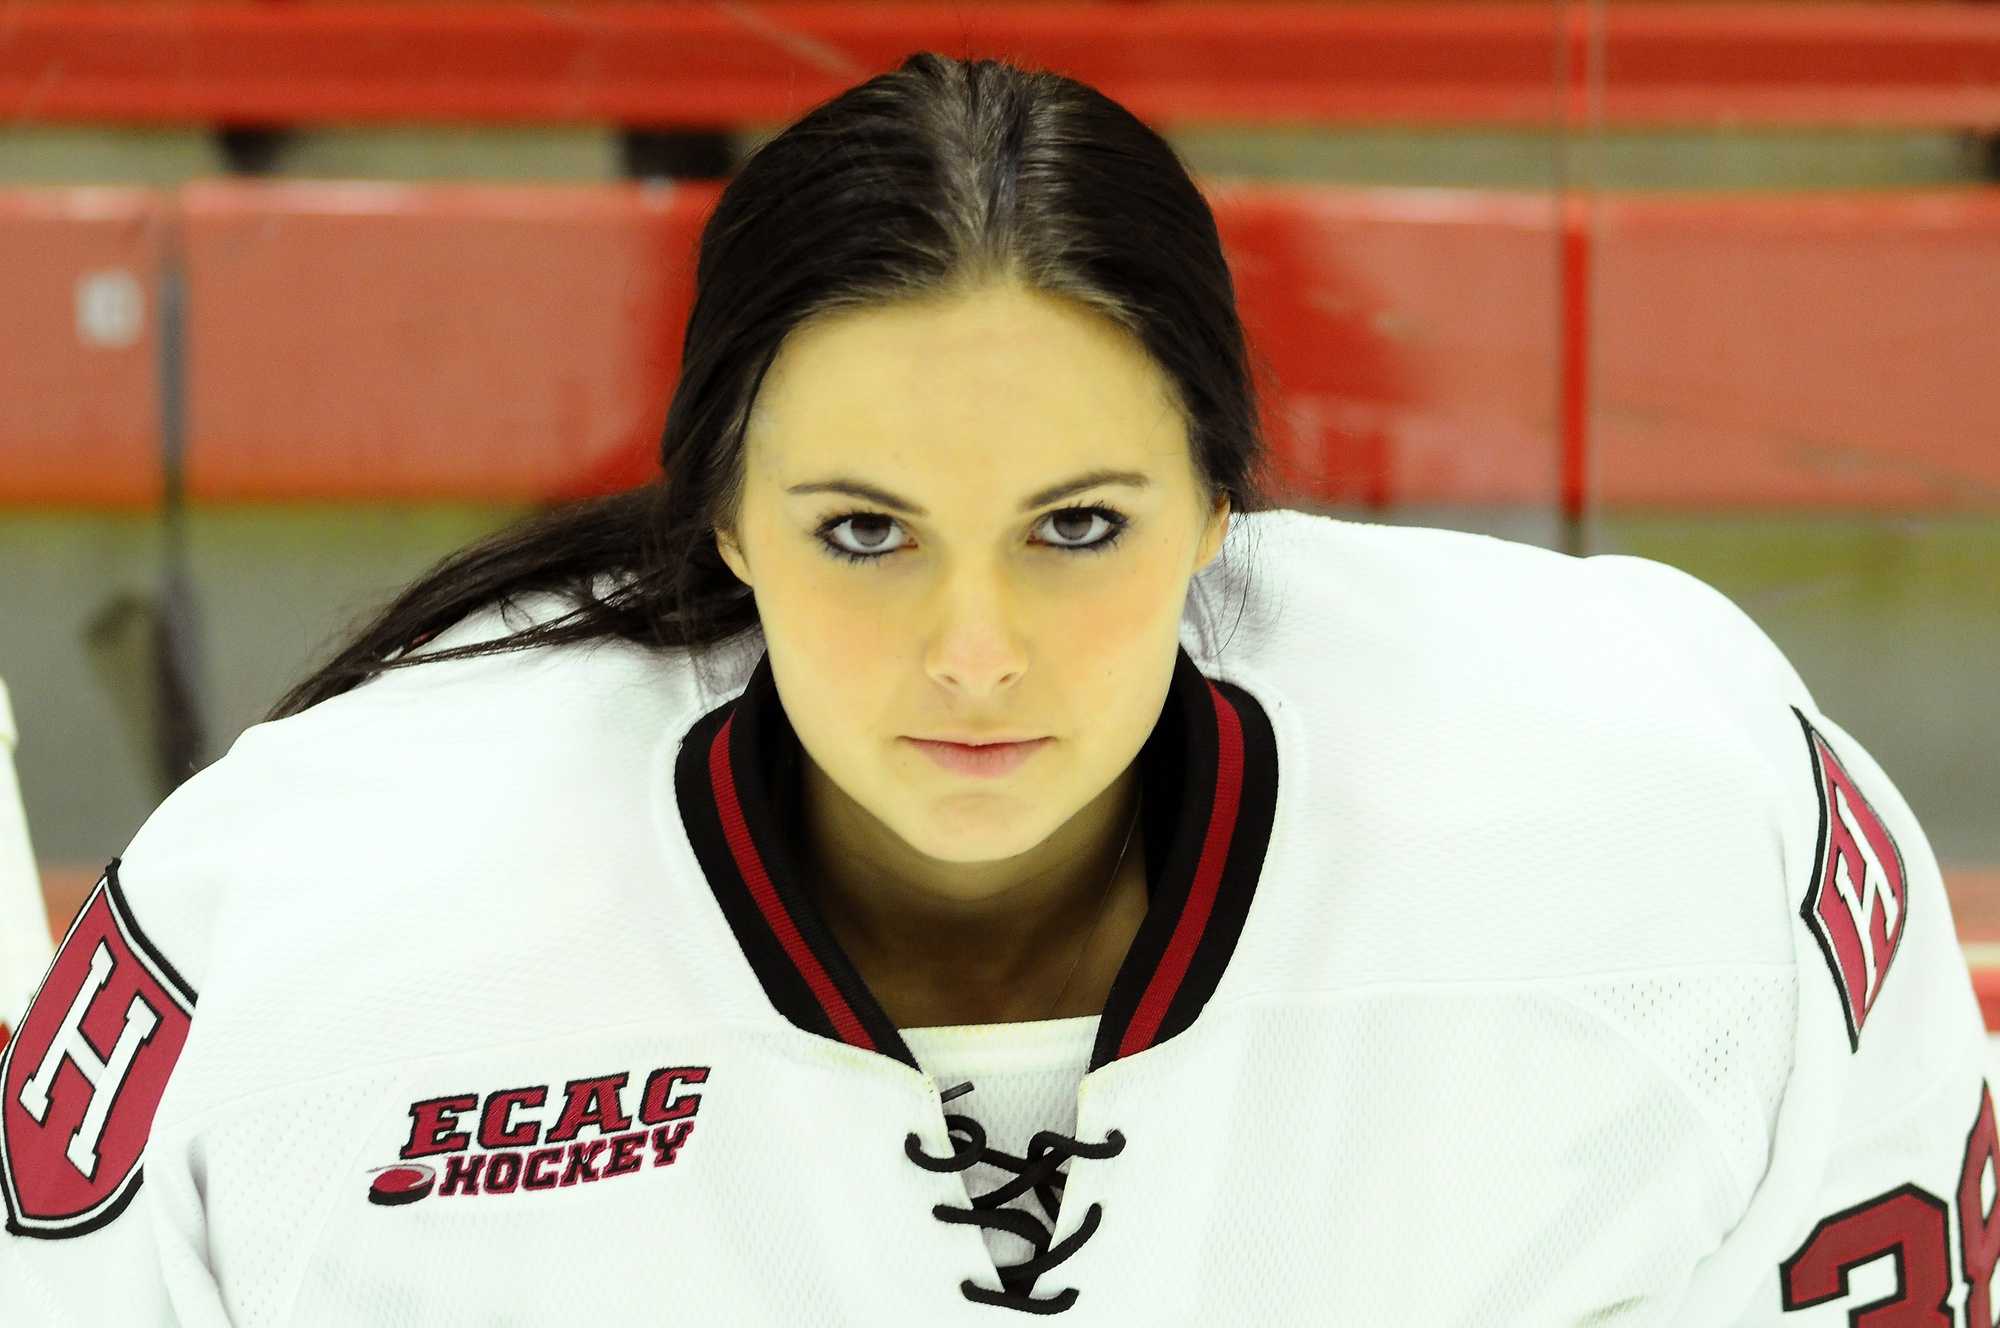 With Laura Bellamy '13 behind the bench as a coach, it is now up to sophomore Emerance Maschmeyer to protect the net.